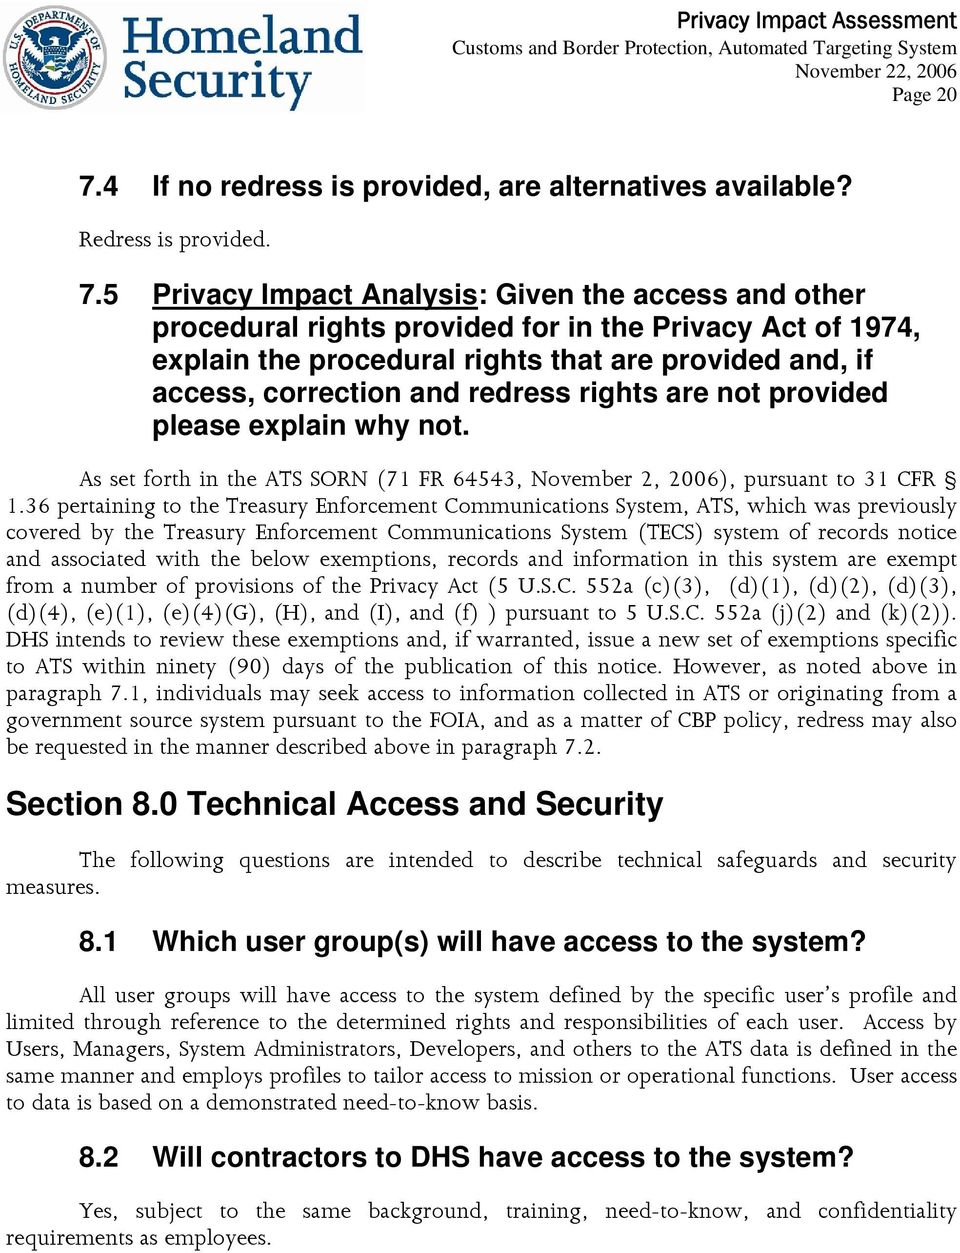 5 Privacy Impact Analysis: Given the access and other procedural rights provided for in the Privacy Act of 1974, explain the procedural rights that are provided and, if access, correction and redress